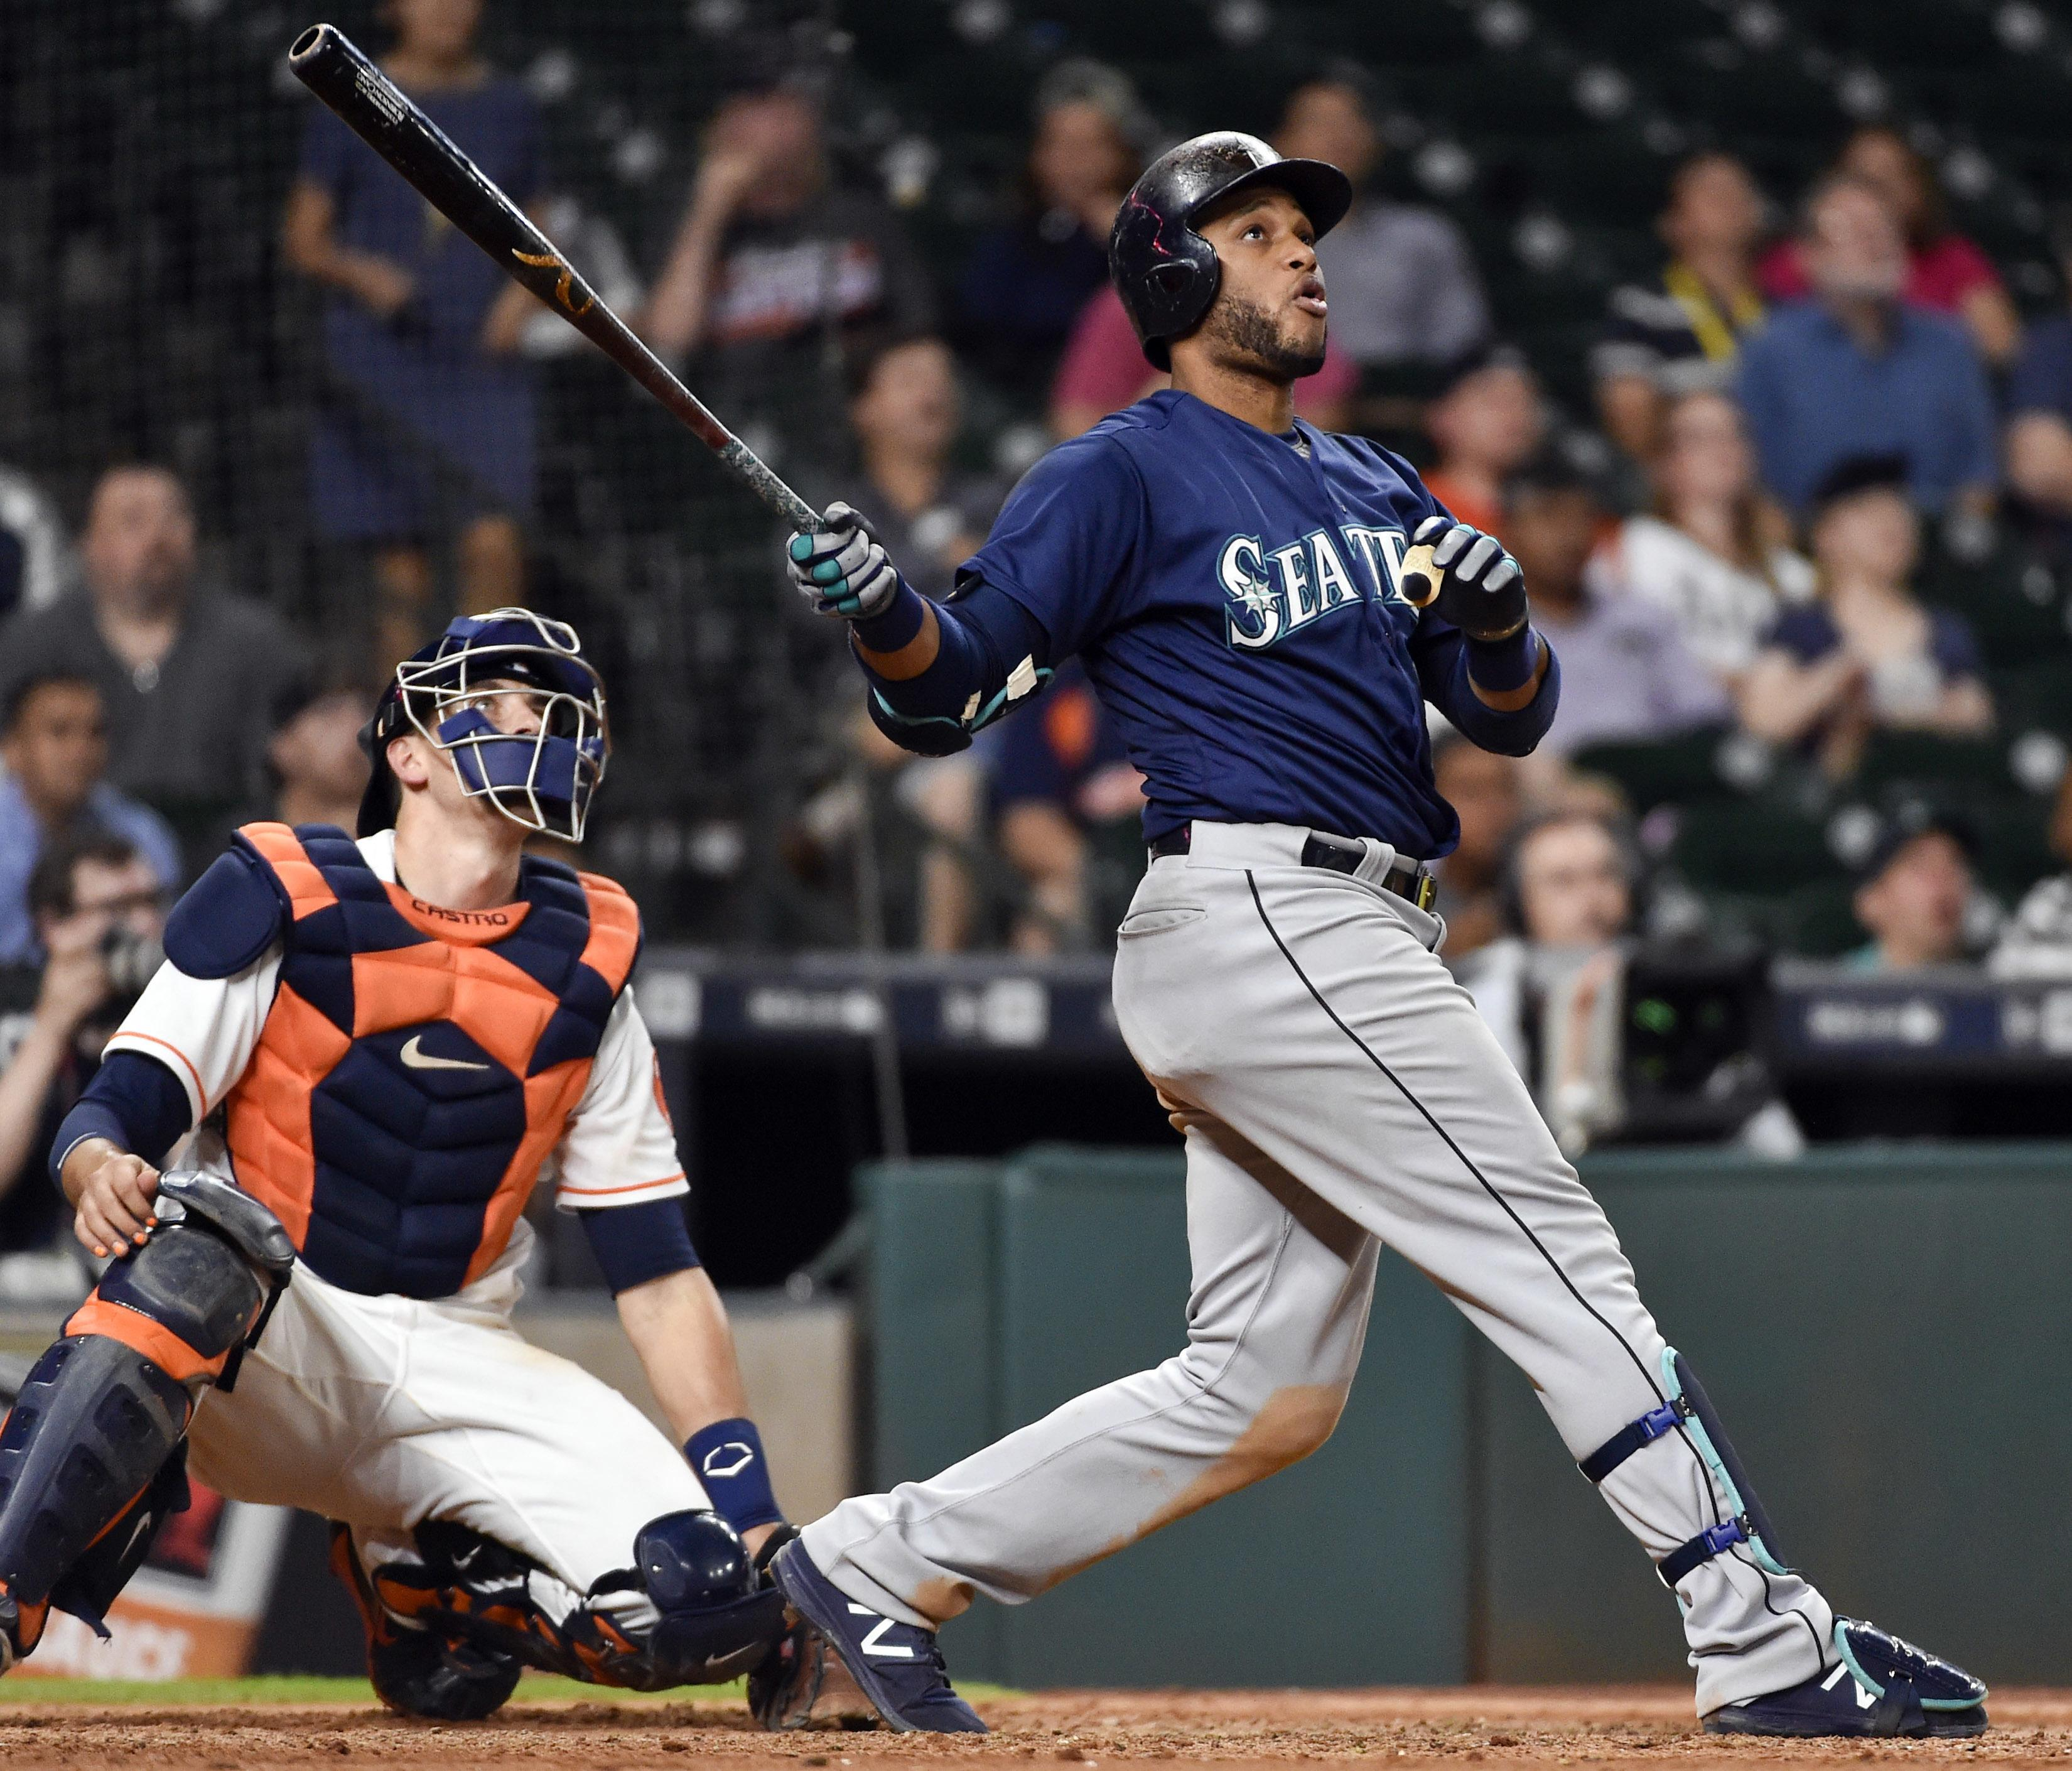 Cano's home run rescues Mariners, keeps playoff hopes ...